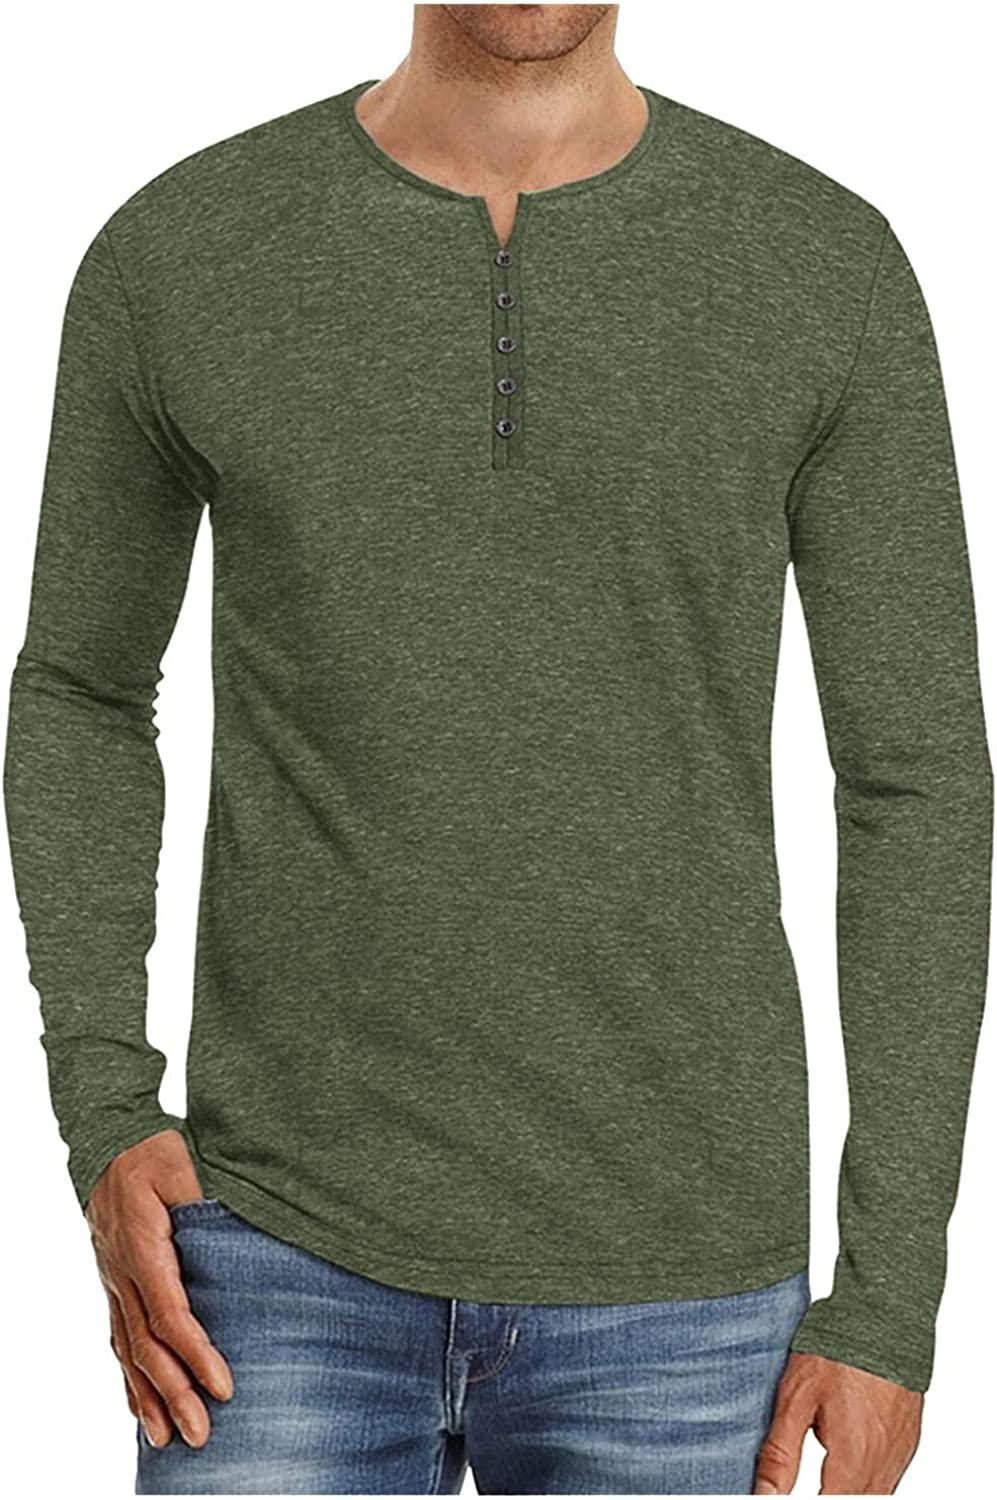 Long Sleeve Tee Shirts for Men Casual Mens Athletic Sweatshirt Sport Pullover Shirts Multi-button Sweater Hoodie